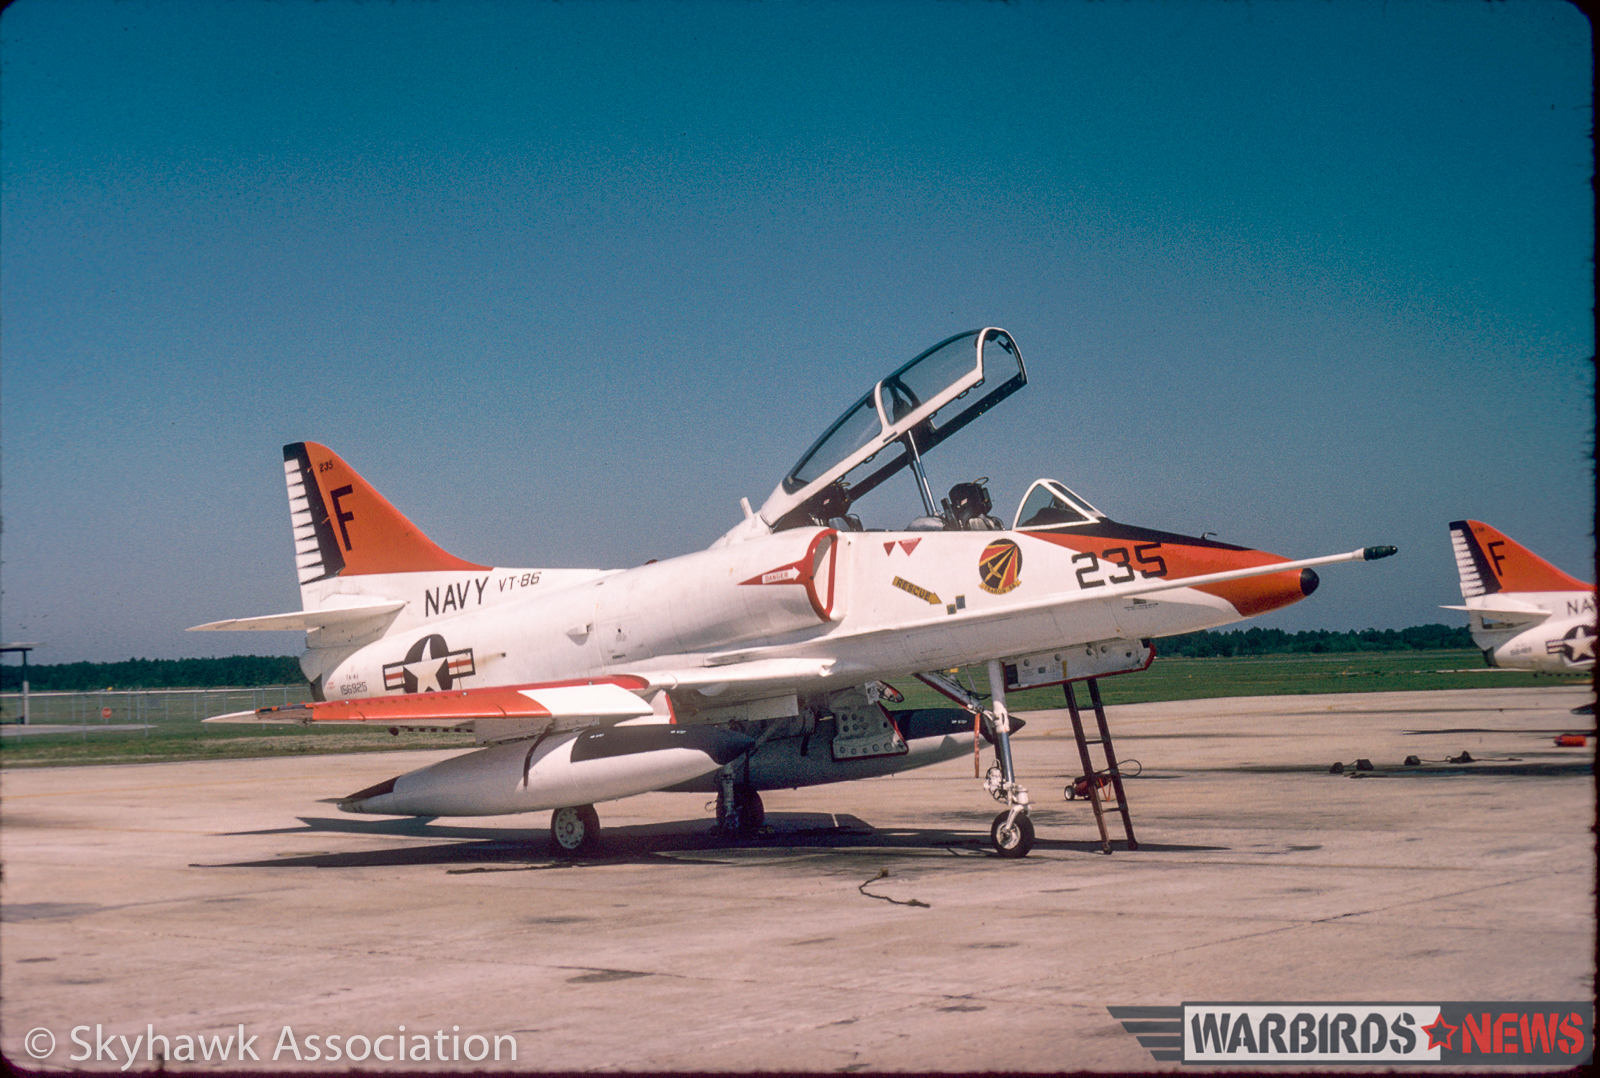 Right front view of VT-86 Sabrehawks TA-4J Skyhawk BuNo 156925 F-235, on the flightline, NAS Pensacola, 21 April 1978. (photo via Skyhawk Association)